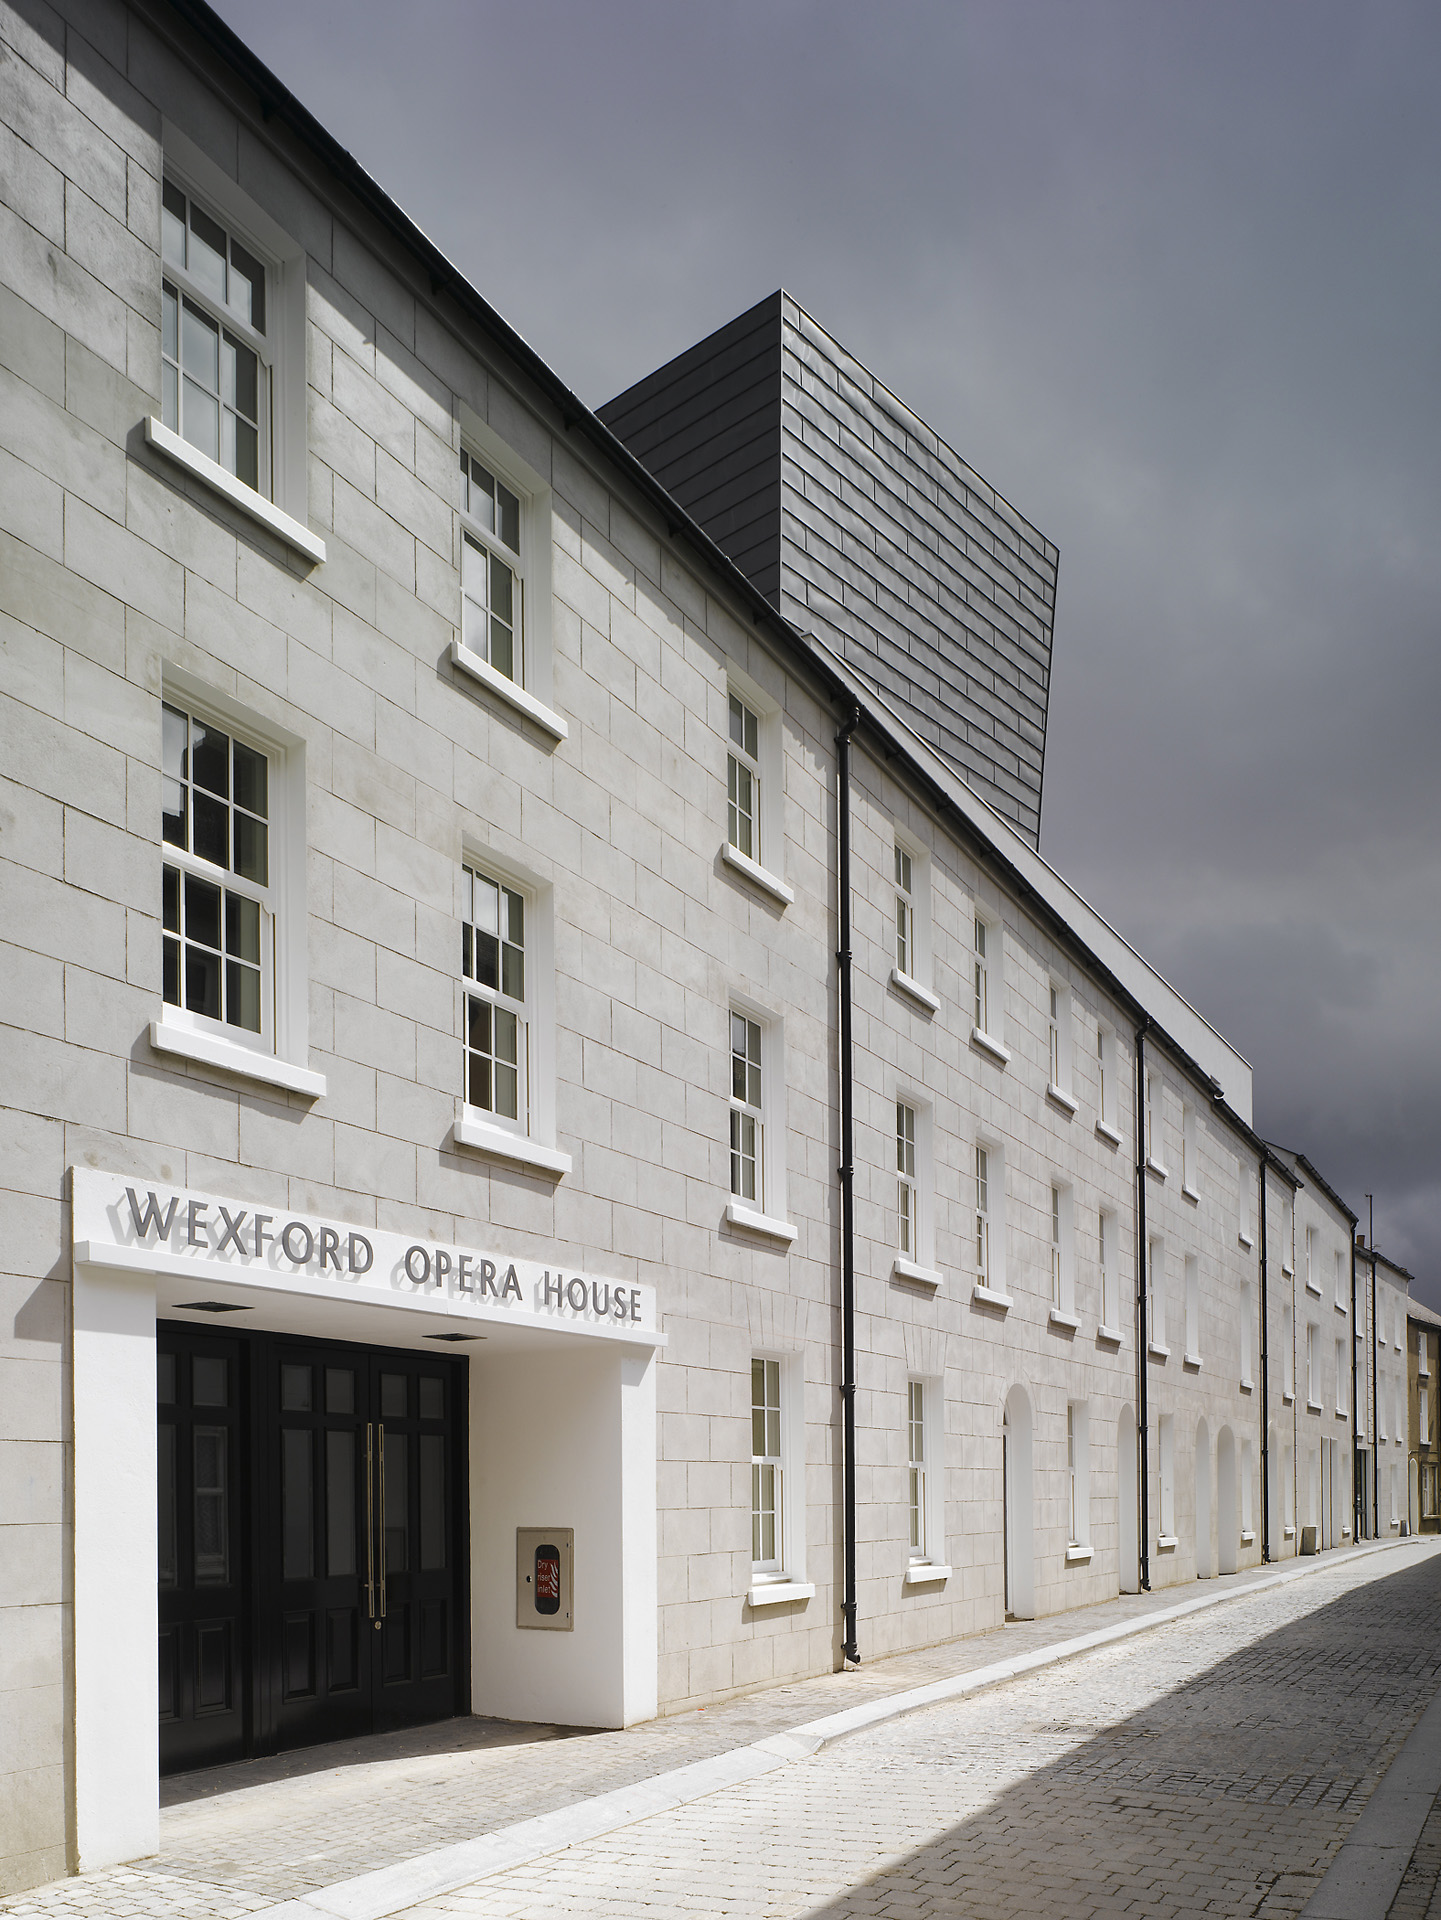 Main entrance formed in the existing terraced buildings at the National Opera House Wexford Ireland